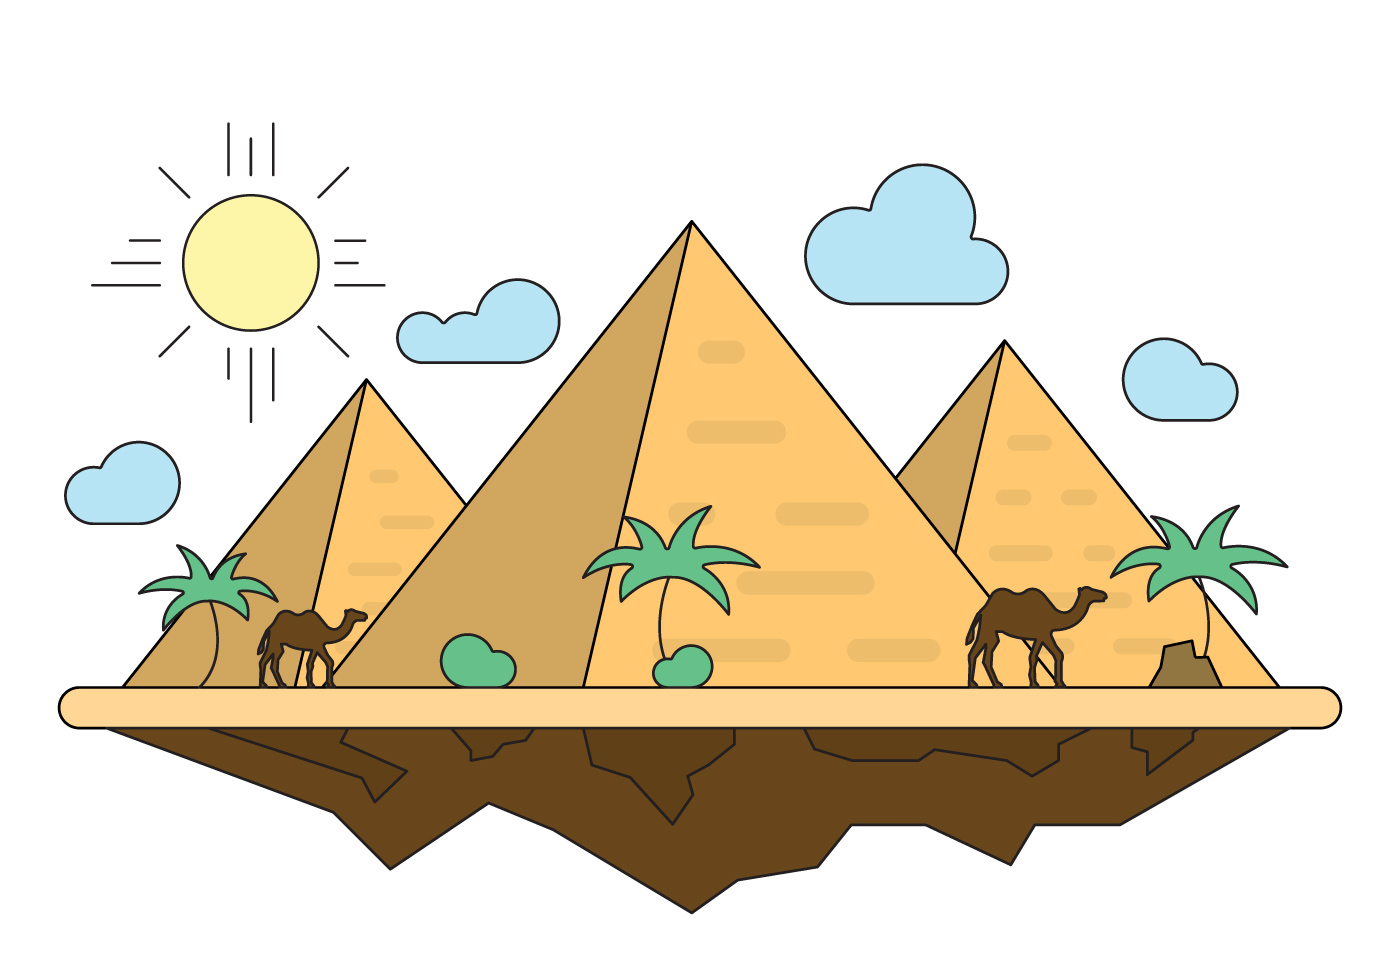 Vector Cartoon For Free Download About 5 514 Vector: Illustration With Pyramids